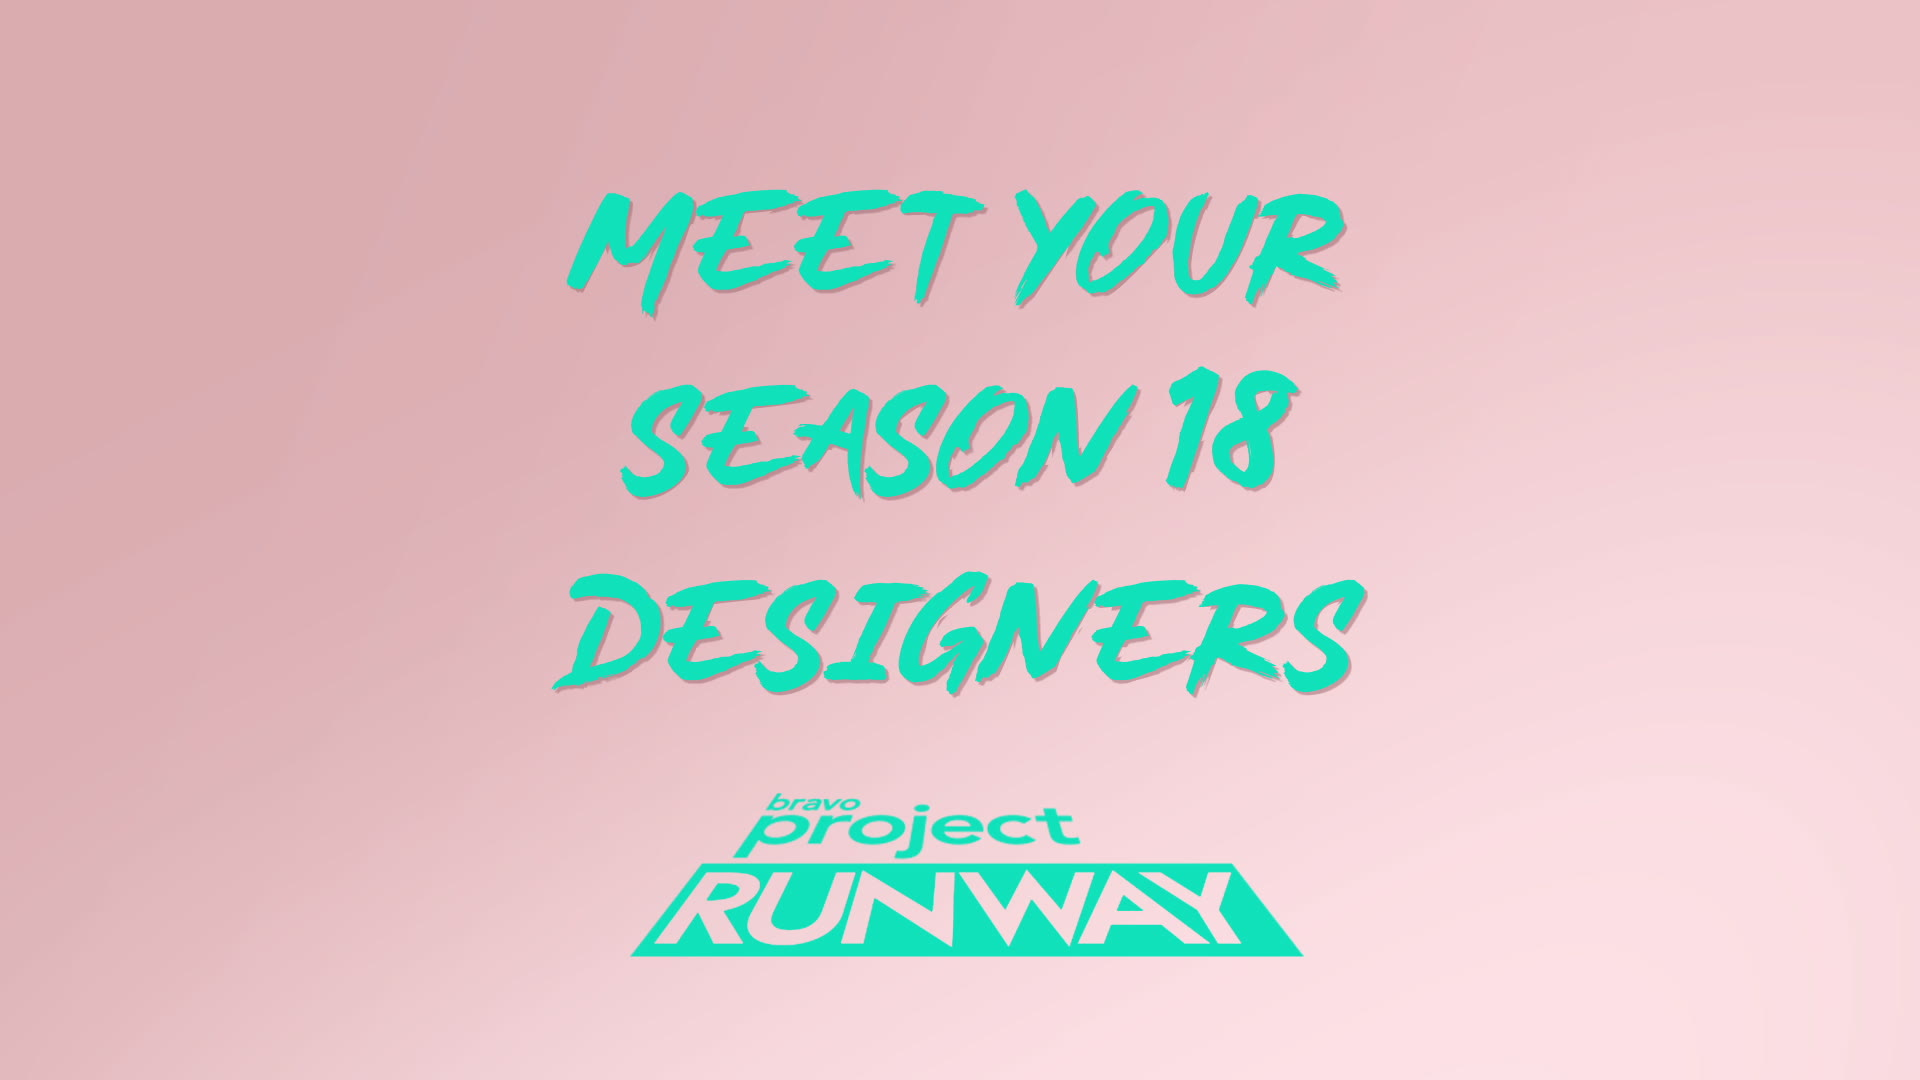 Meet the Project Runway Season 18 Designers